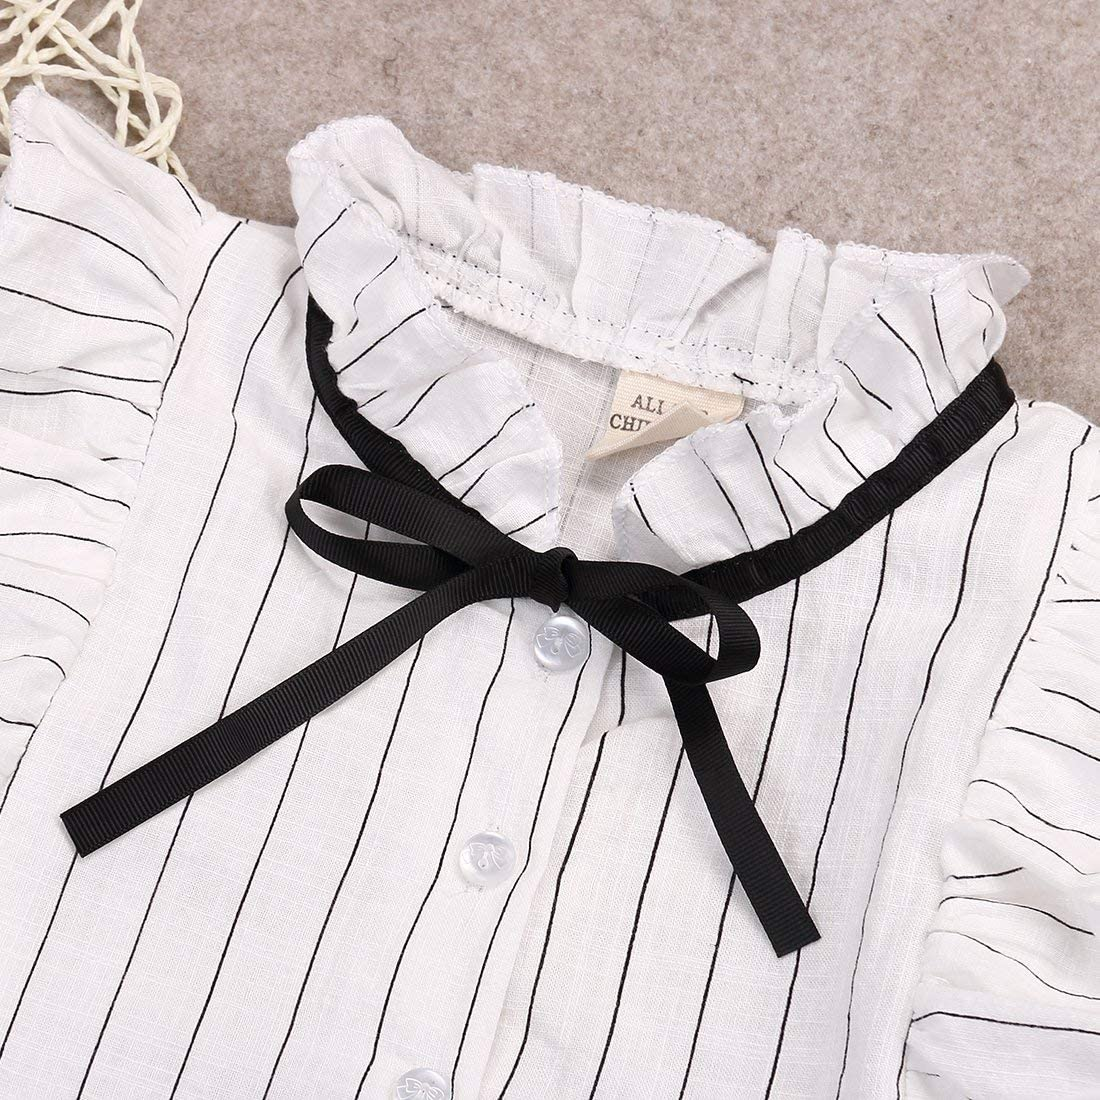 douleway 2 Pieces Kids Girls Ruffles Sleeveless Bow Collar Stripes Shirt Chiffon Top Pleated Skirt Set Outfits 2-7Y